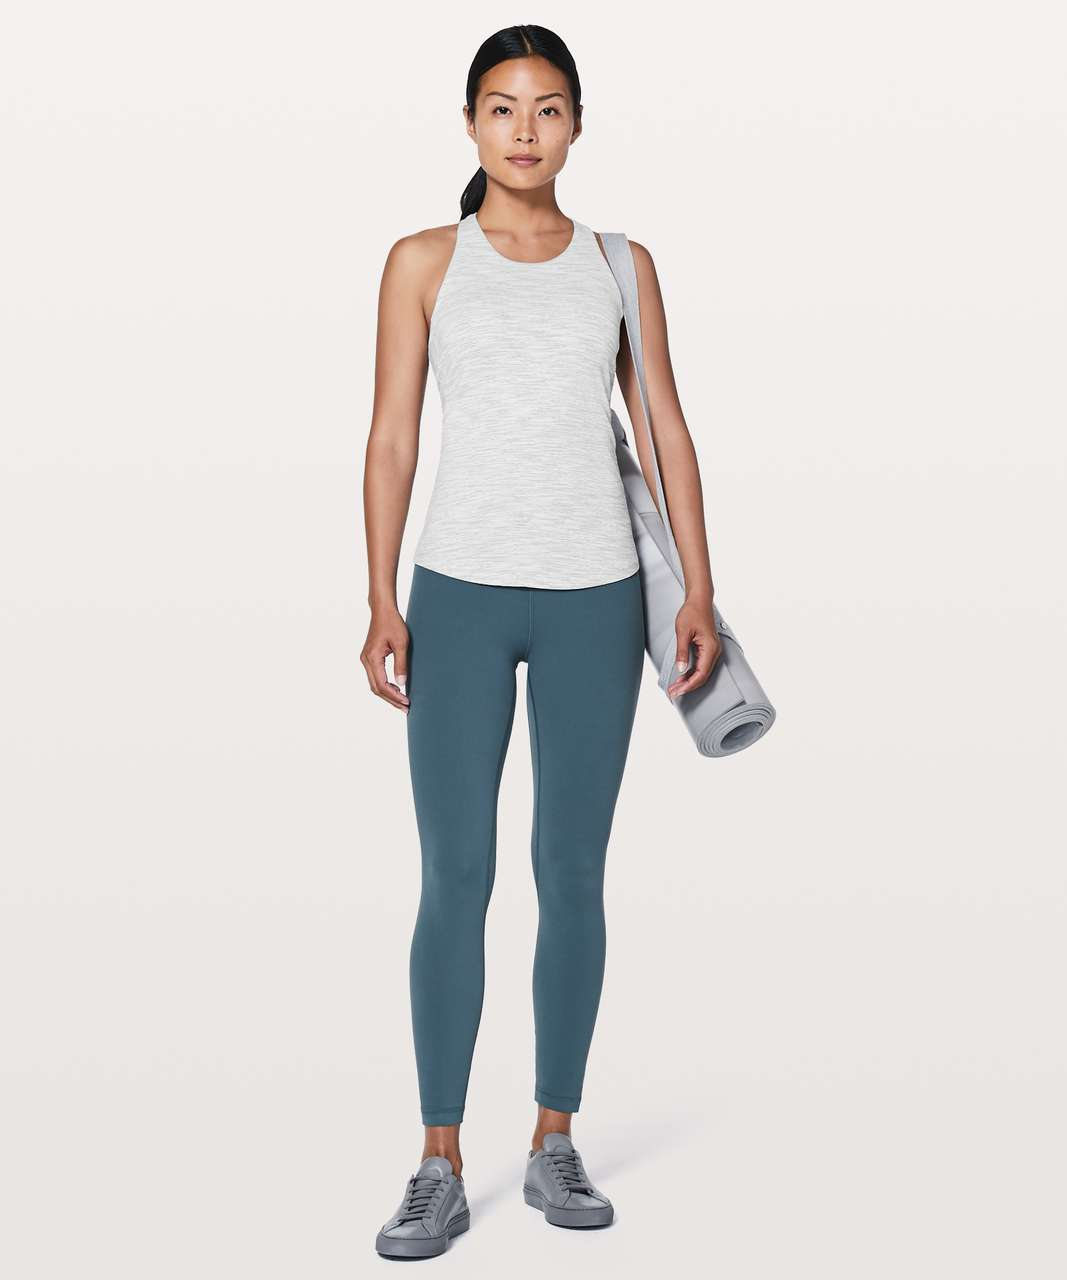 Lululemon Sweat Reps 2 In 1 Tank - Wee Are From Space Nimbus Battleship